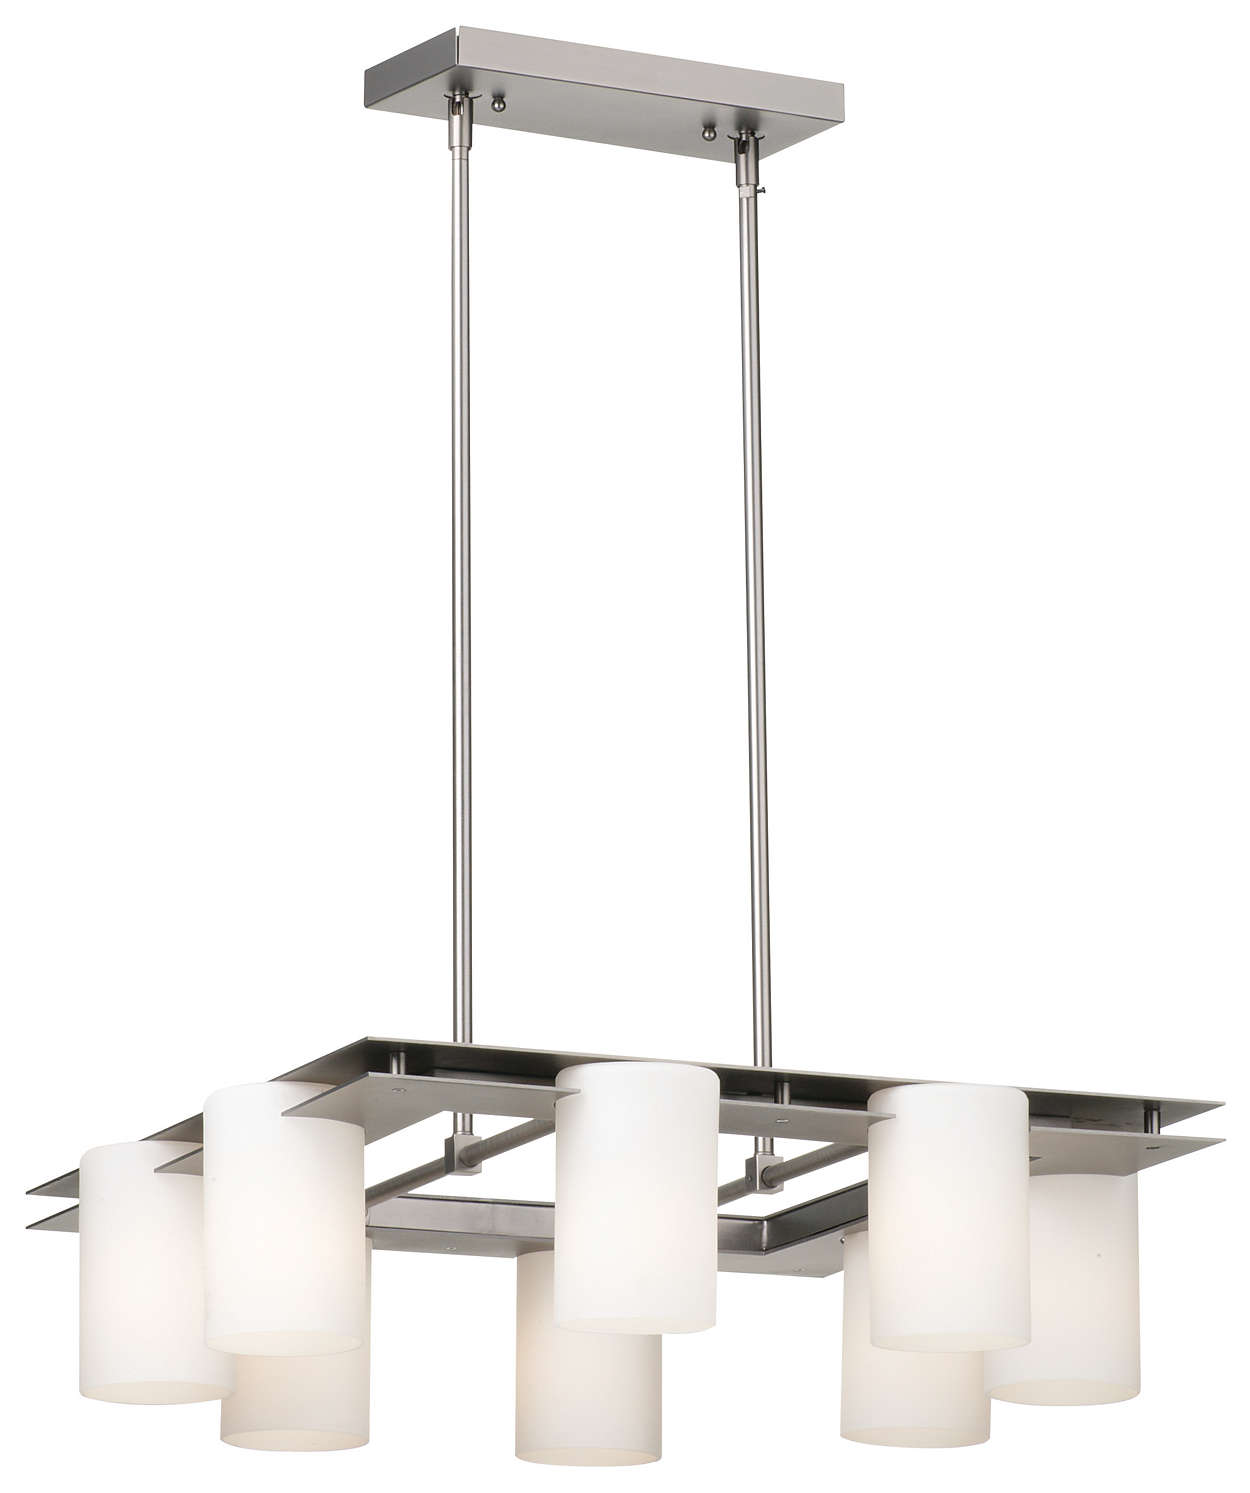 Ingo 8-light Chandelier in Gun Metal finish